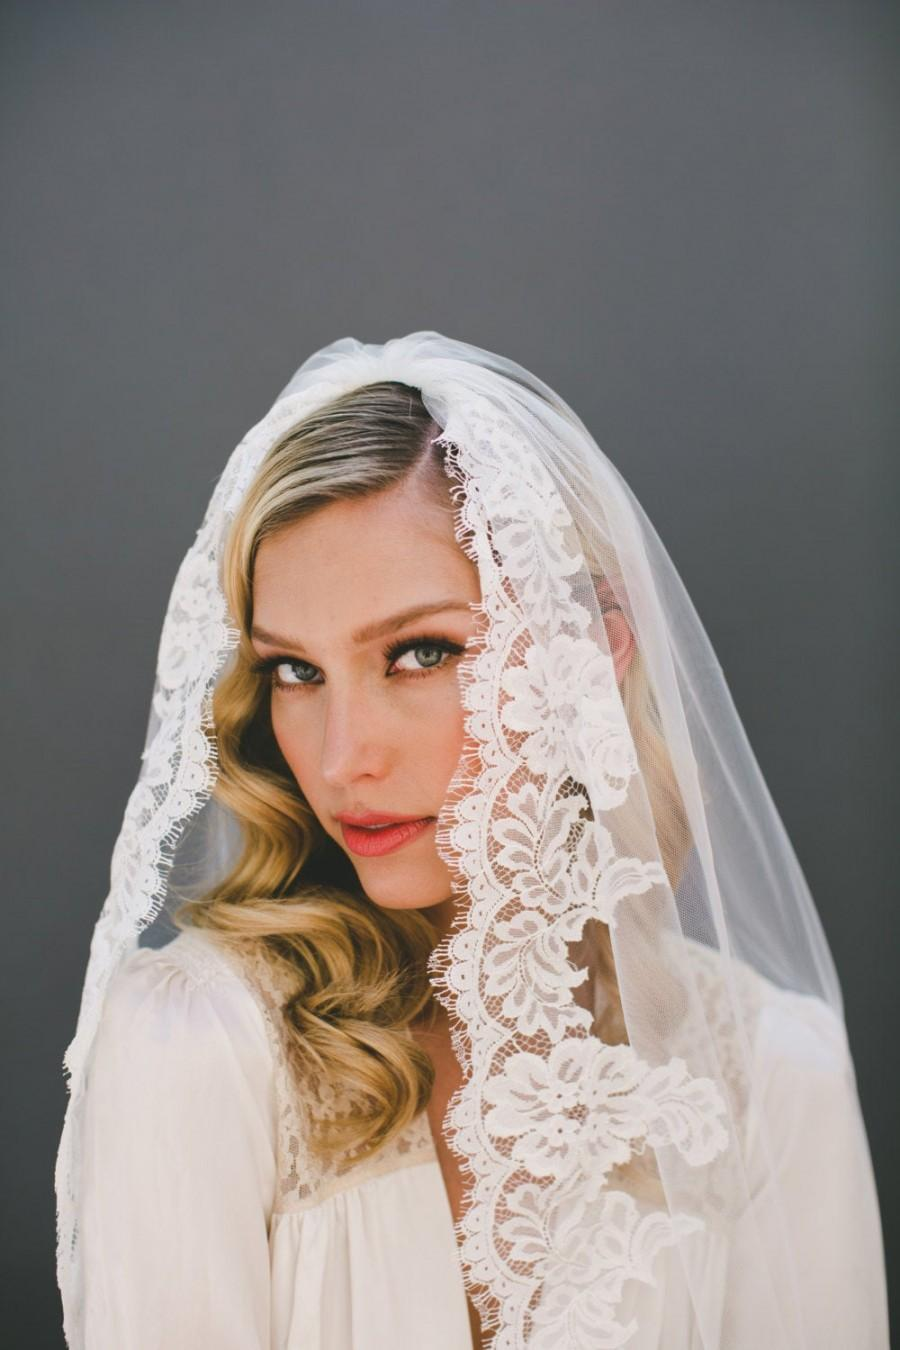 زفاف - Mantilla Veil-Ivory Lace Veil-Eyelash fringe Lace-Chapel Veil-Simple Wedding Veil-Soft Wedding Veil-First Communion Veil-Church Veil-  1573